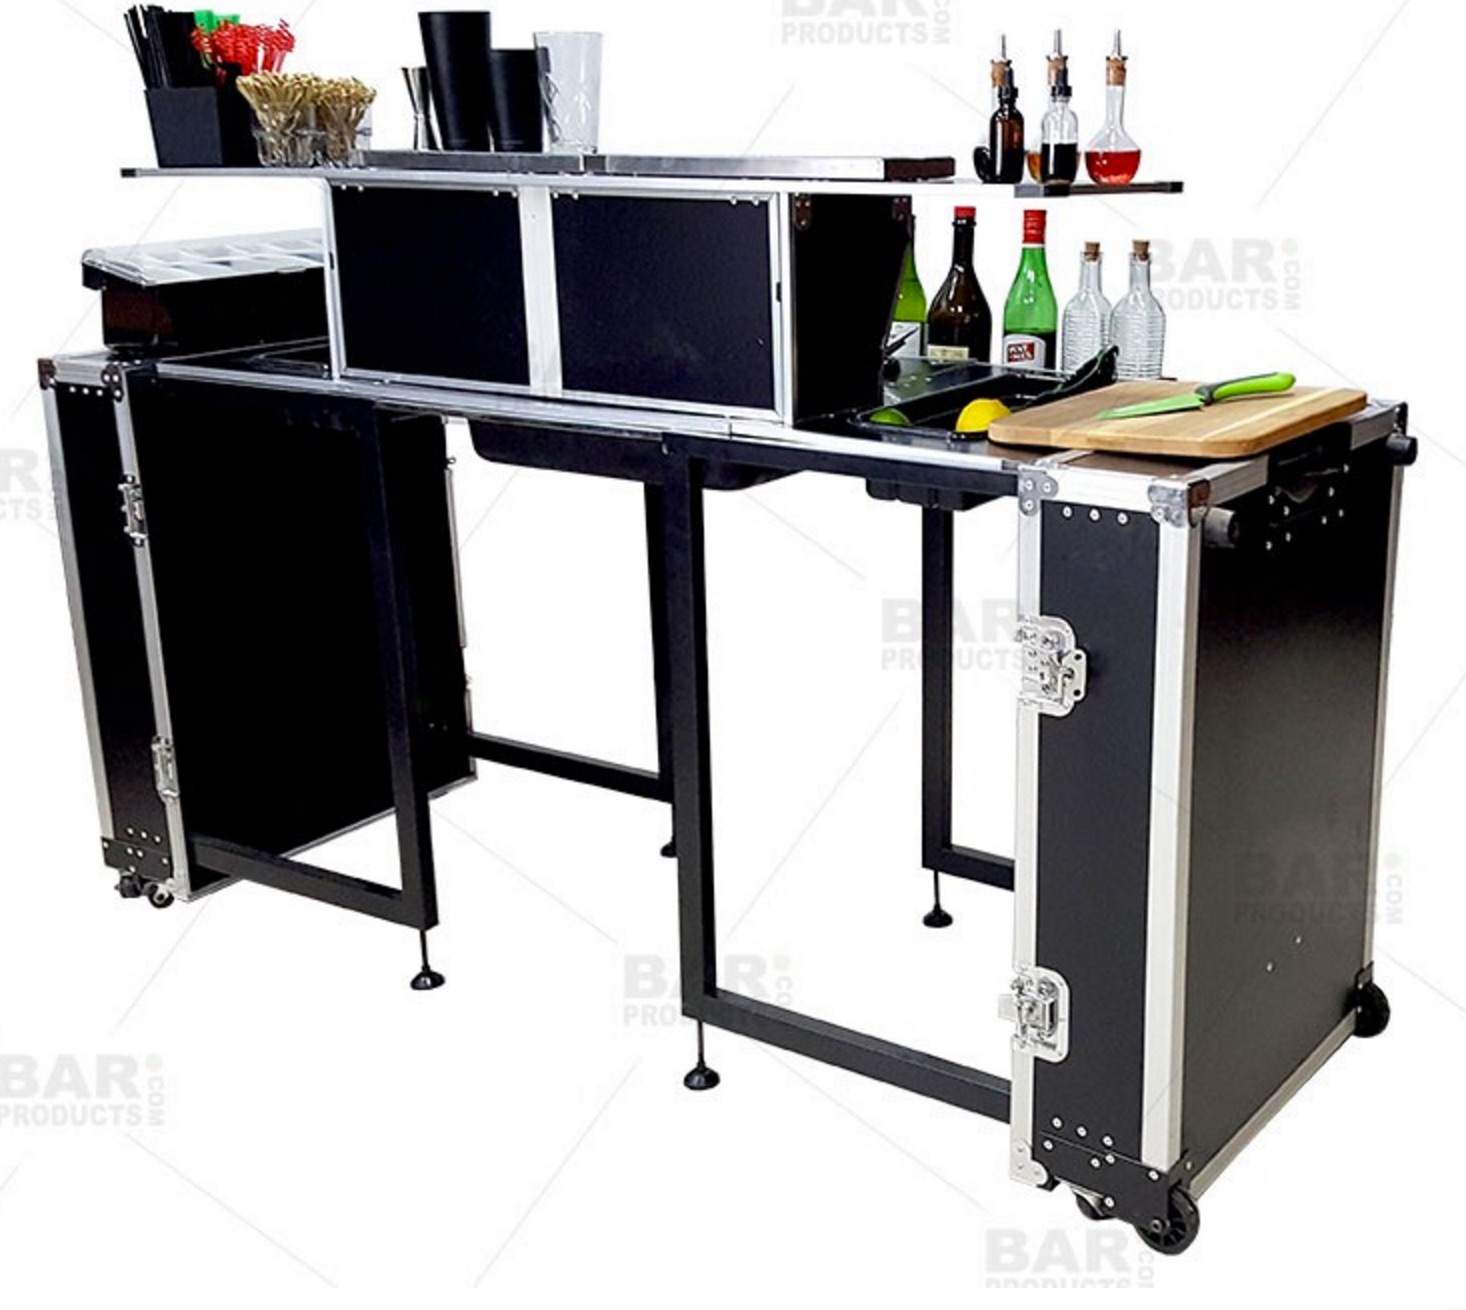 barconic portable bar